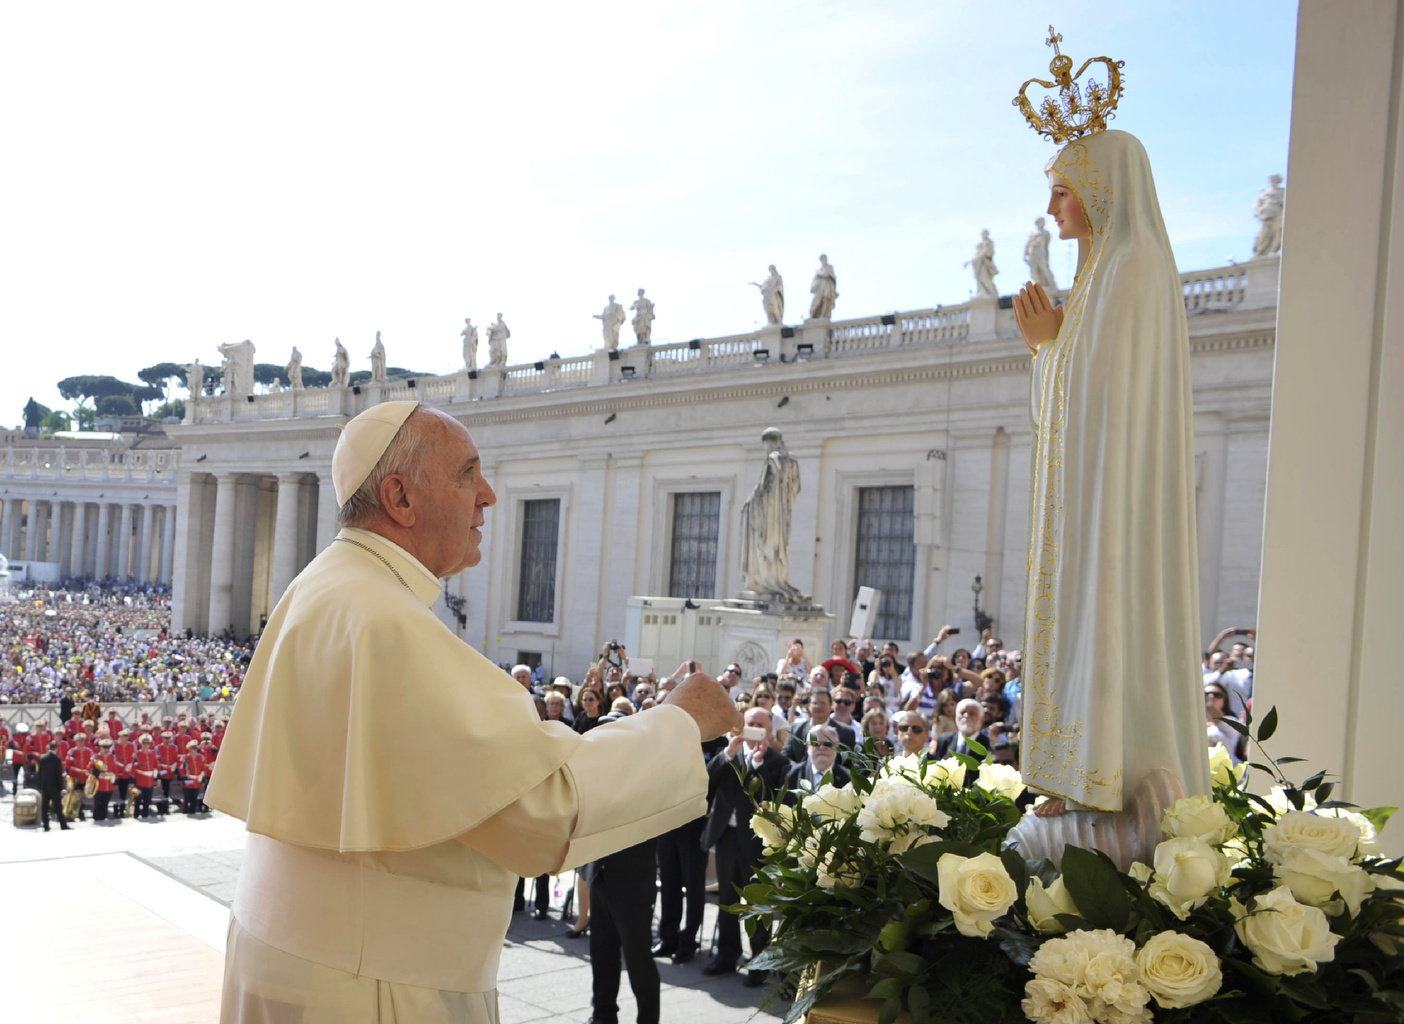 Pope Francis prays in front of statue of Our Lady of Fatima during general audience in St. Peter's Square at Vatican